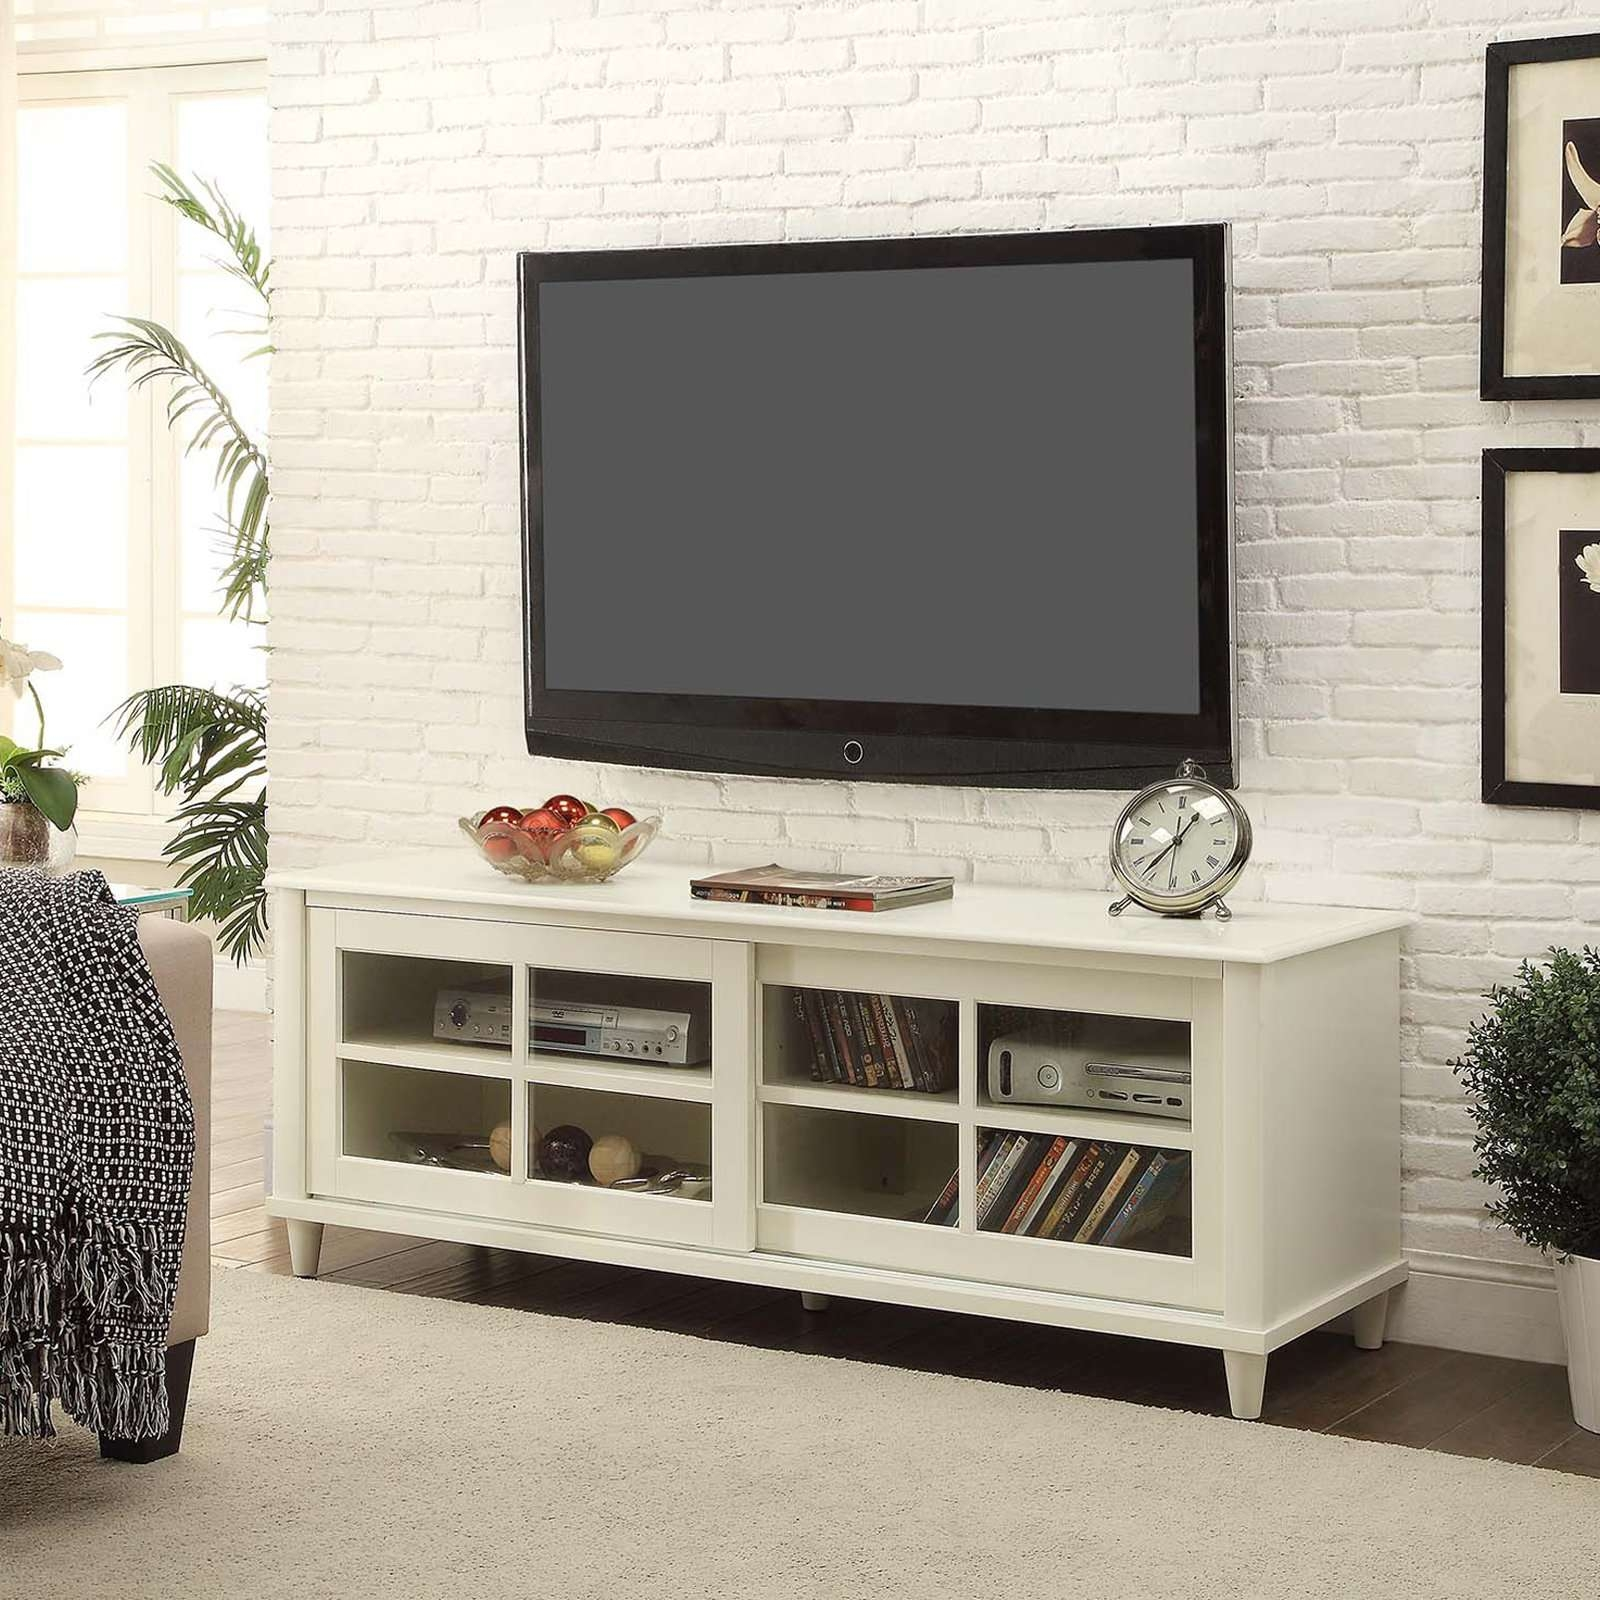 Convenience Concepts French Country Black & Cherry Tv Stand, For With French Country Tv Stands (View 9 of 15)